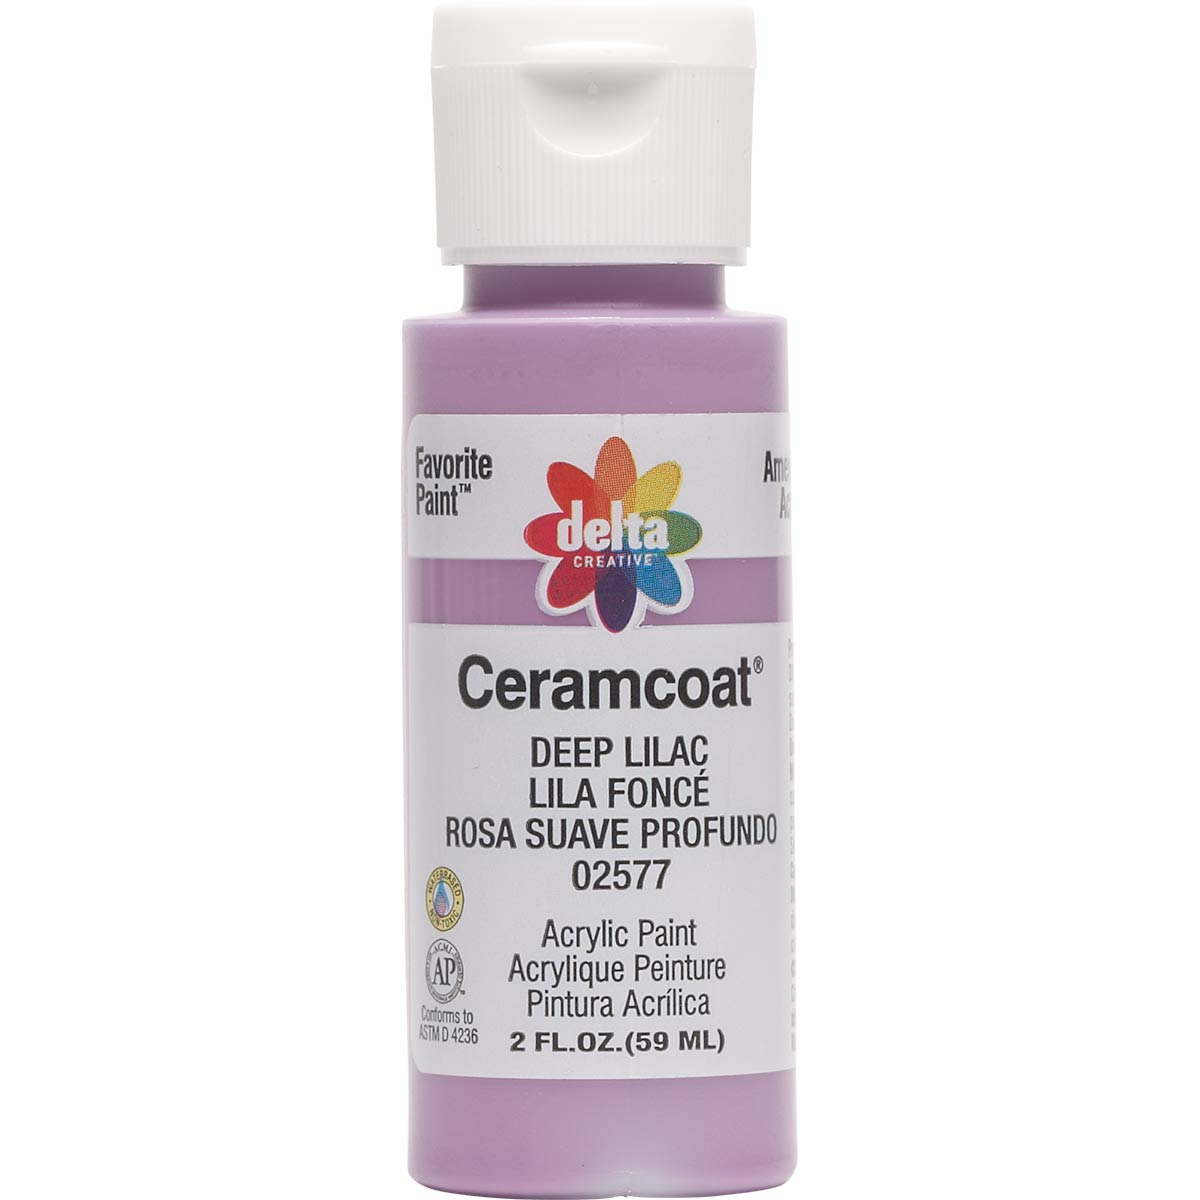 Delta Ceramcoat ® Acrylic Paint - Deep Lilac, 2 oz. - 025770202W